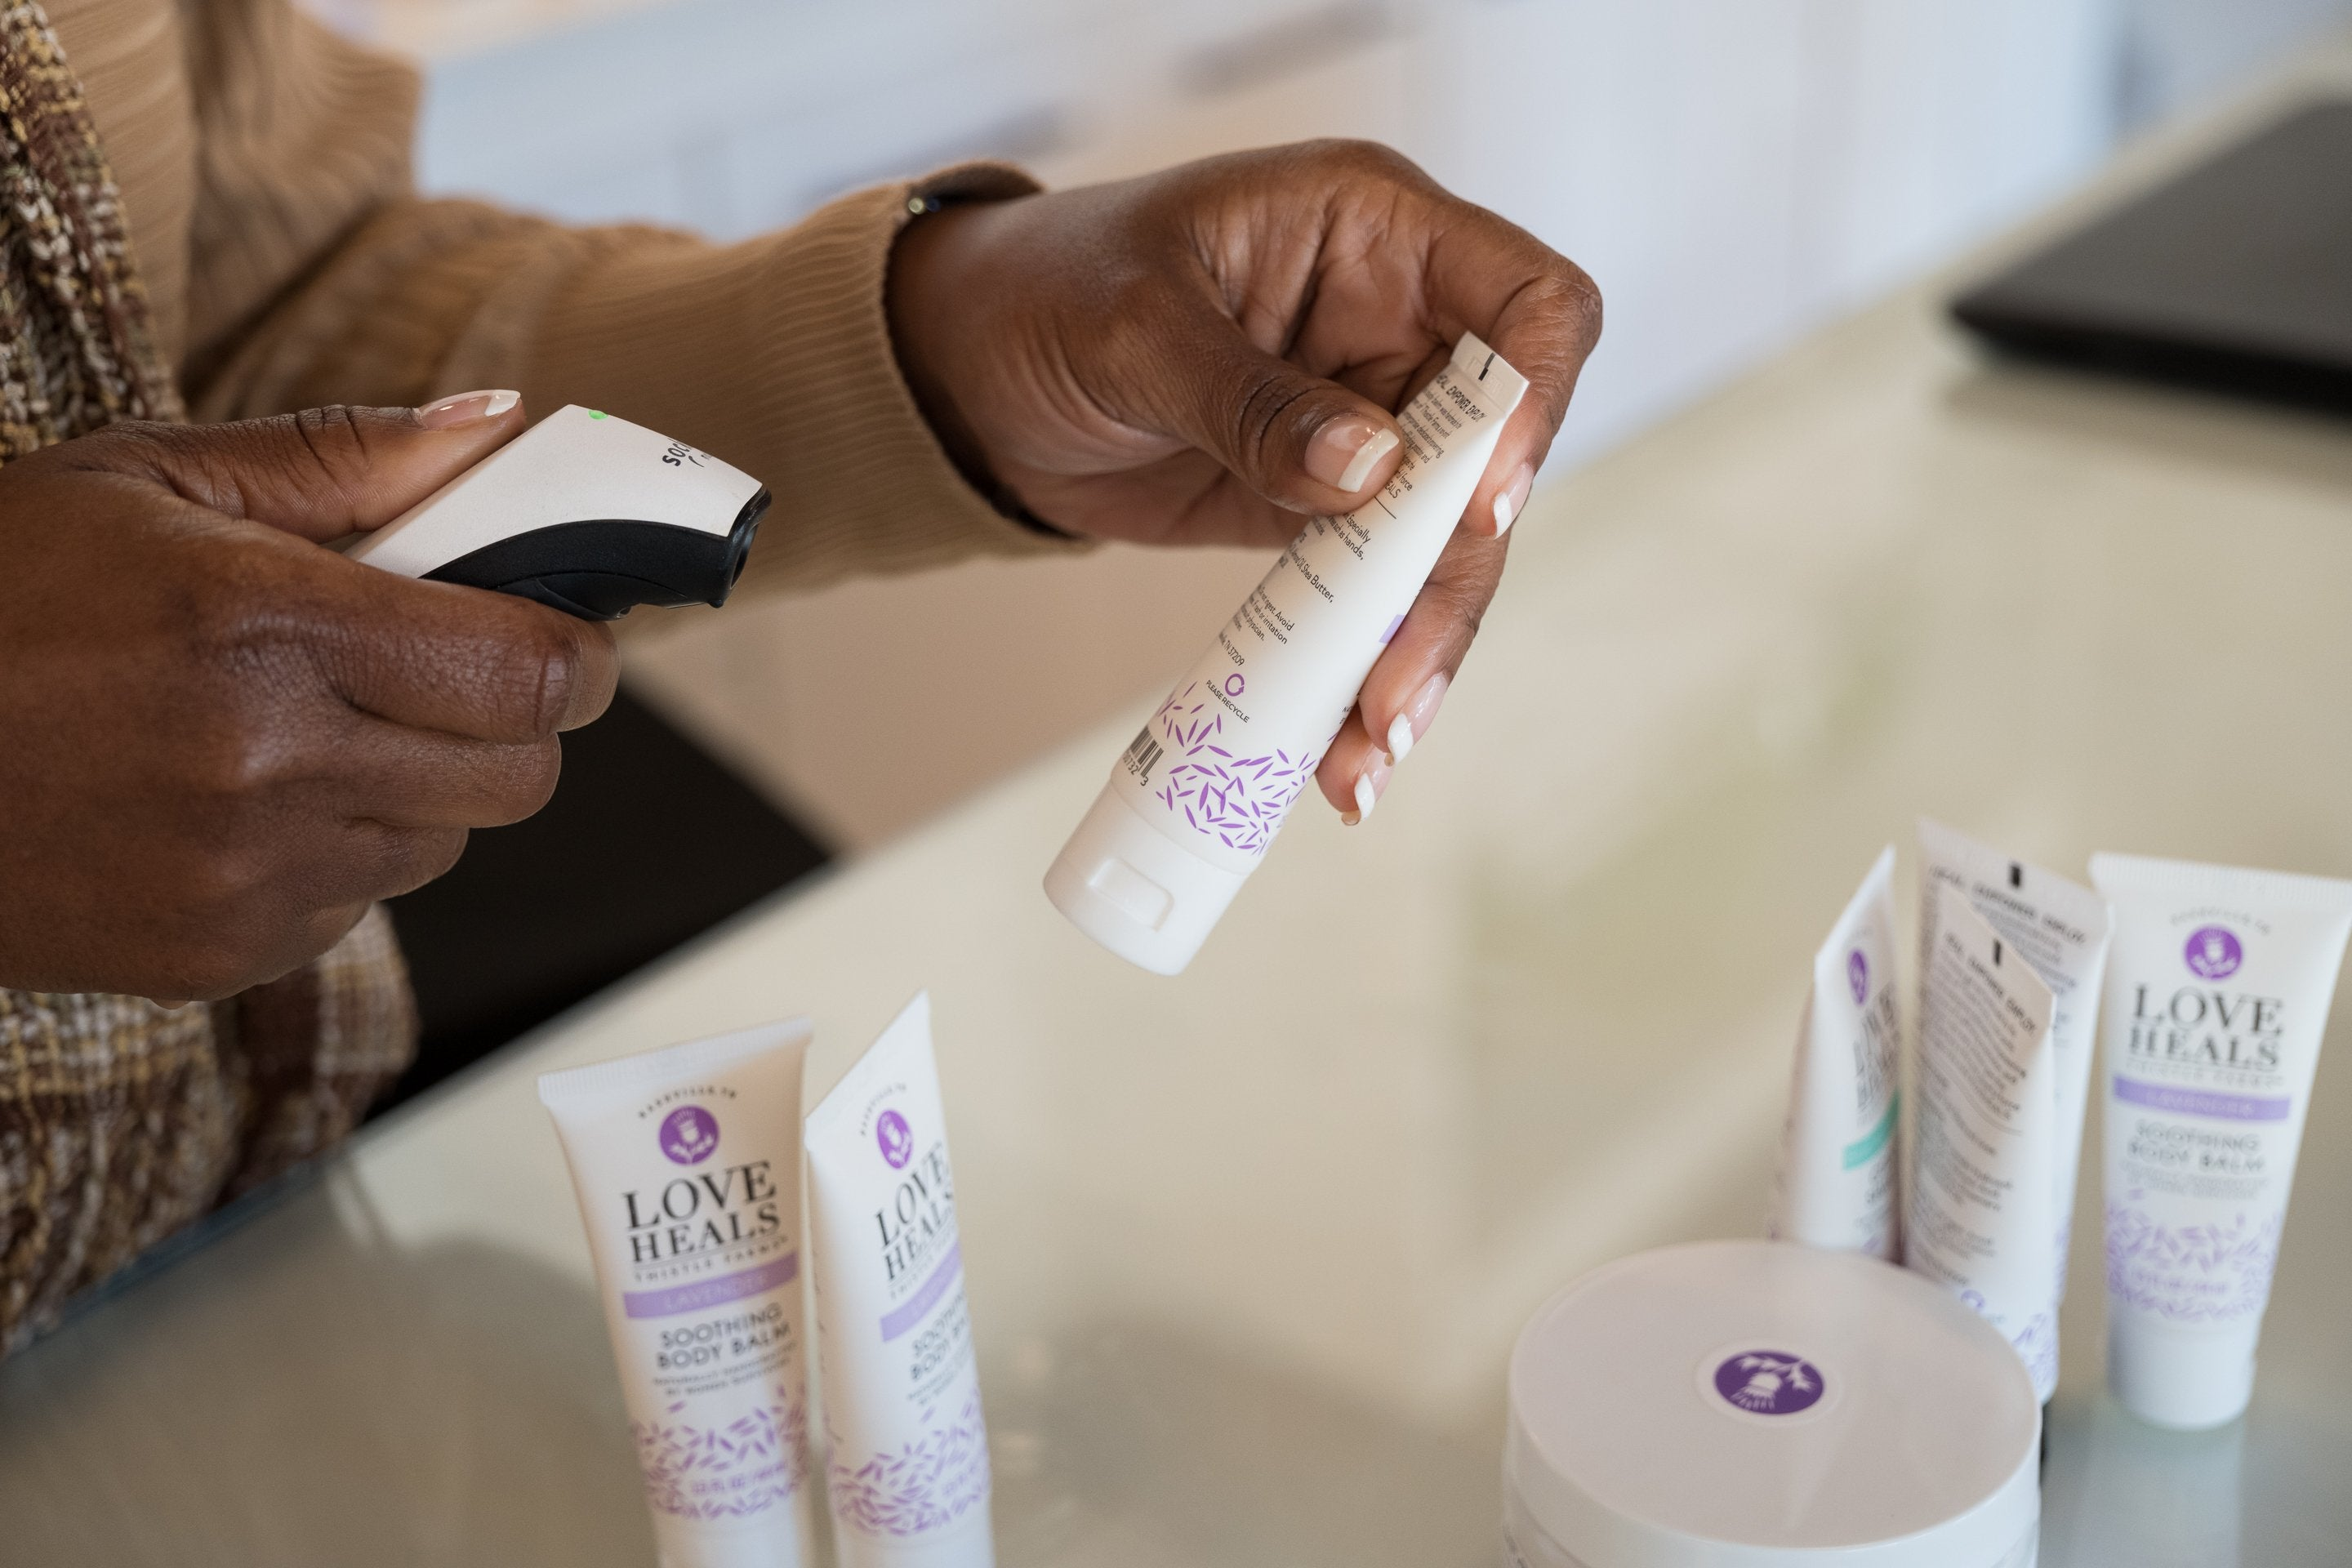 Travel Size Lotions Handmade by Survivors of Human-trafficking